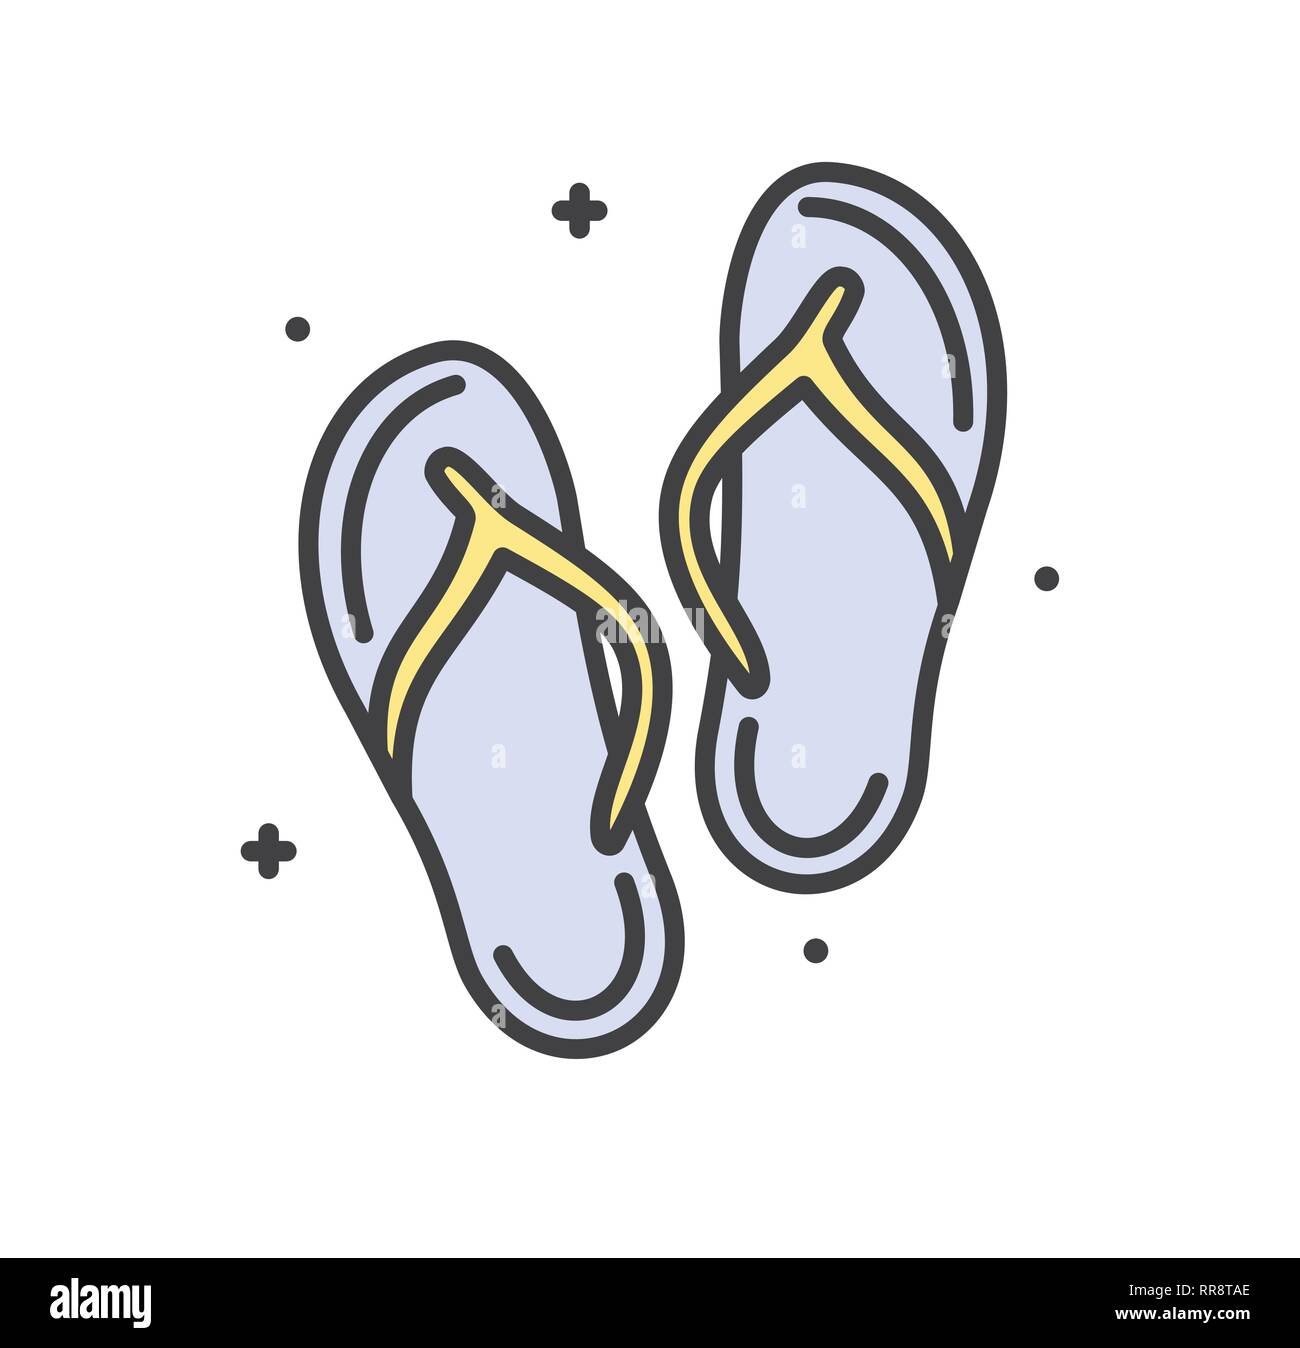 883c17549 Flip flops line icon on white background for graphic and web design ...